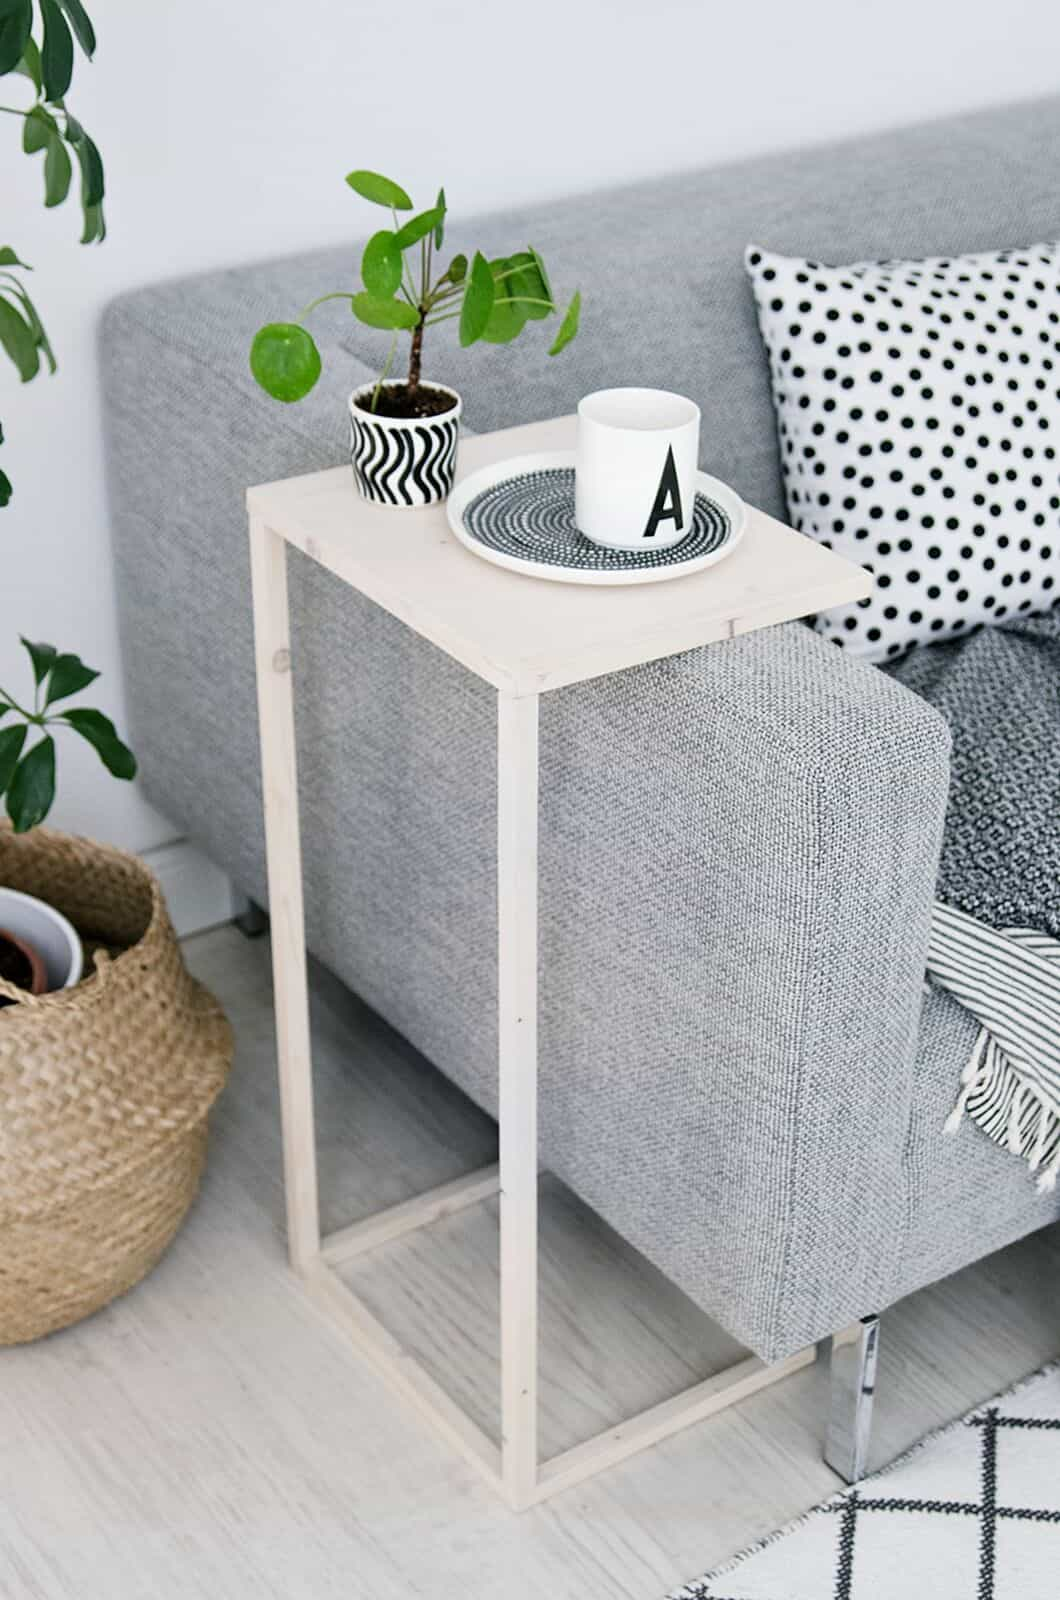 Over the arm coffee service table